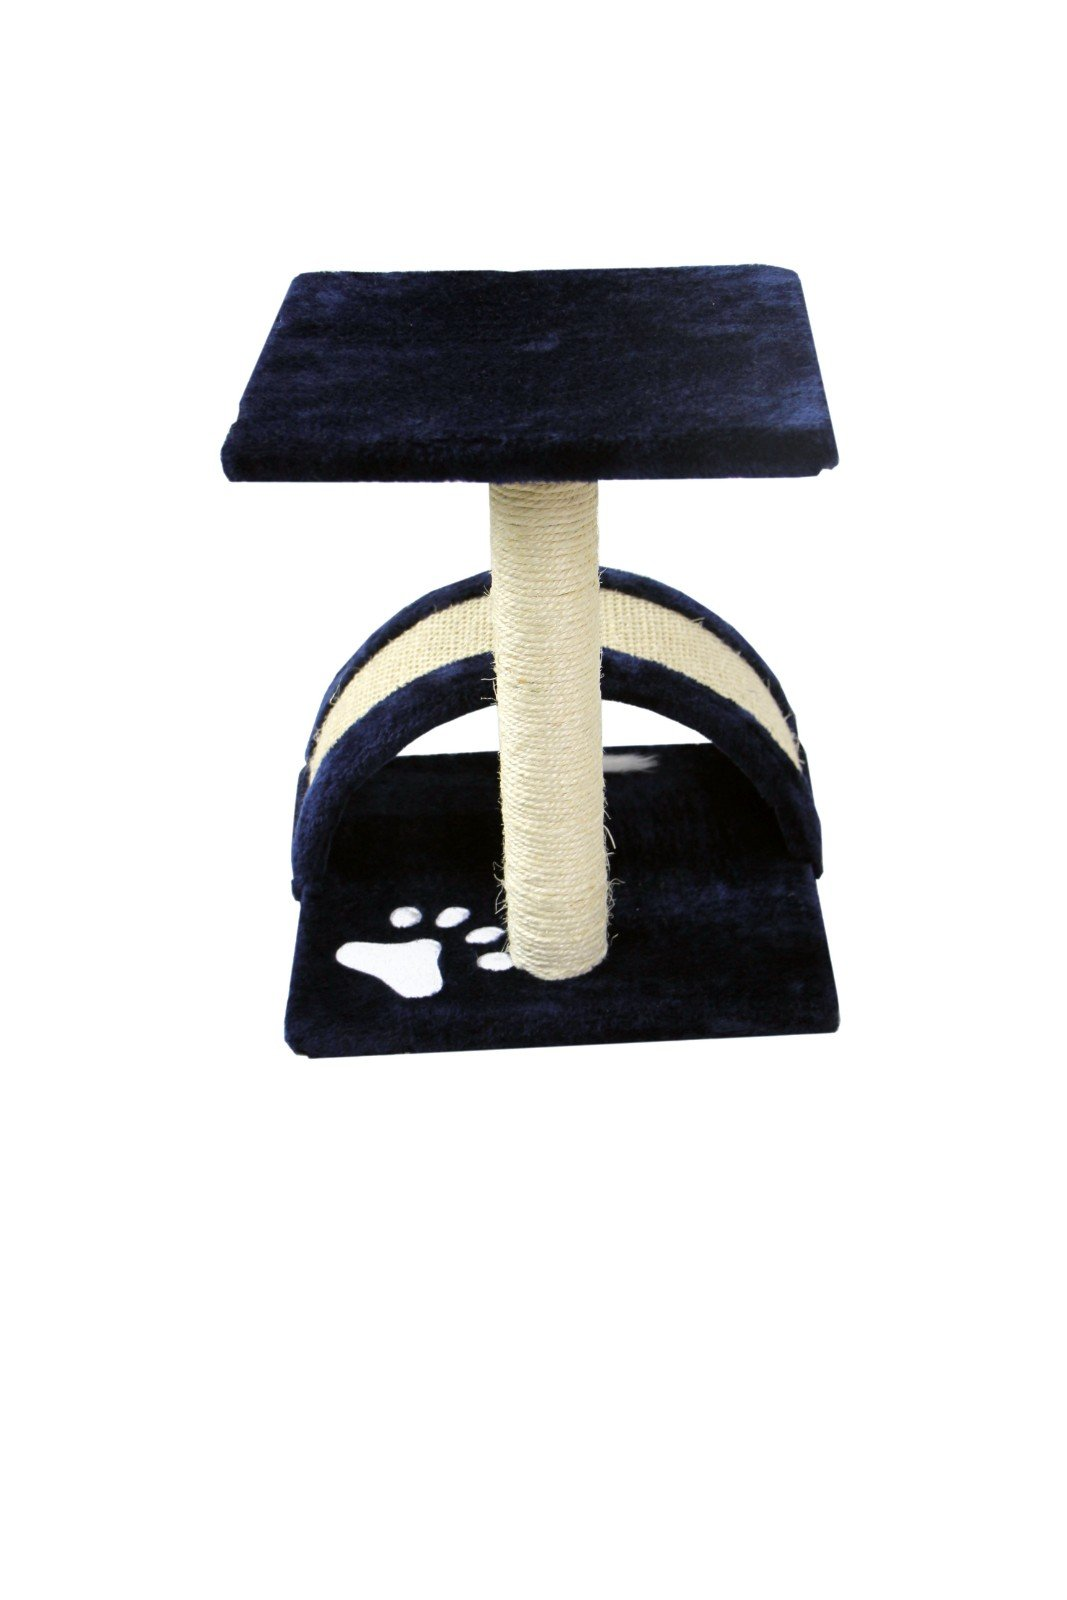 CloudWorks 15'' Small Cat Tree Sisal Scratching Post Furniture Playhouse Pet Bed Kitten Toy Cat Tower Condo for Kittens (Navy Blue) by HIDING by CloudWorks Cat (Image #5)